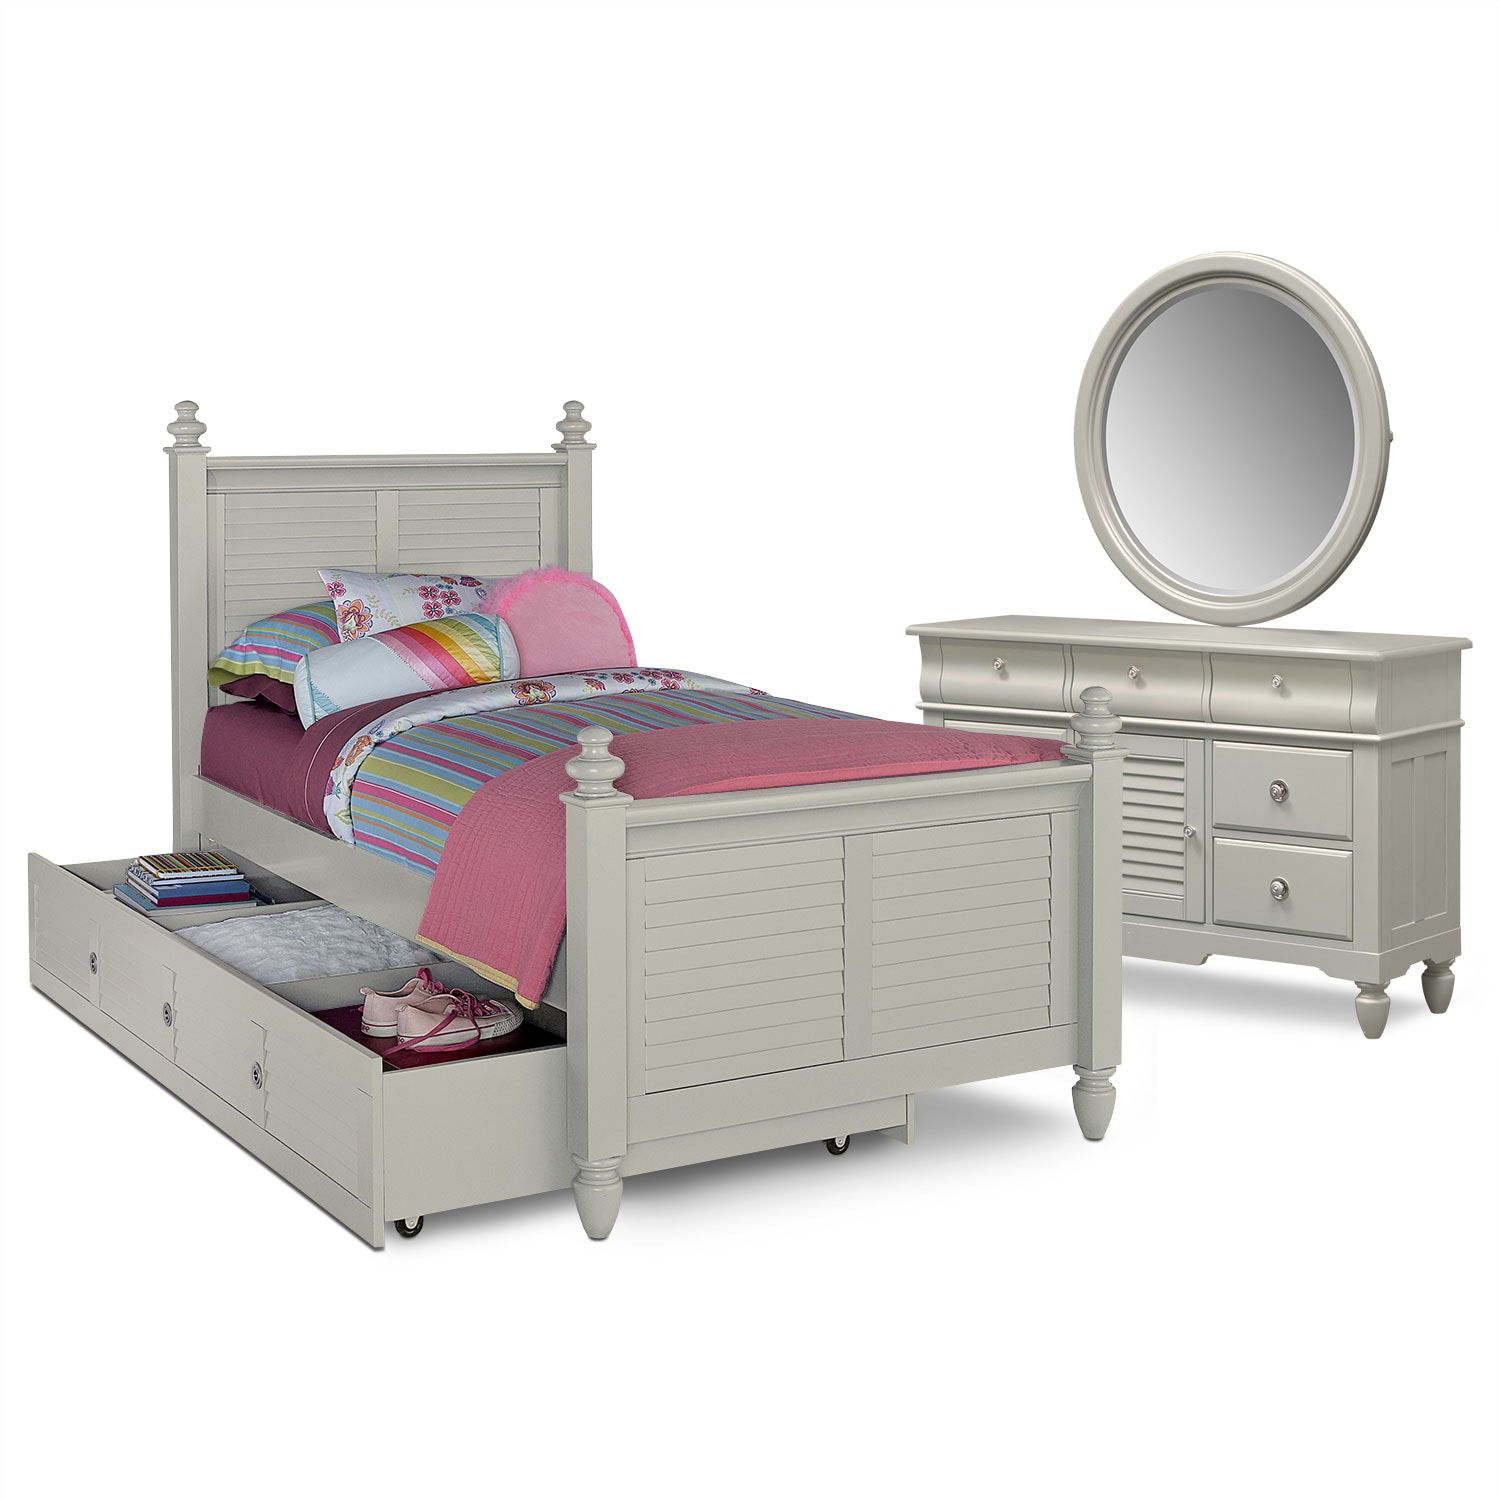 The seaside collection gray american signature furniture Seaside collection furniture